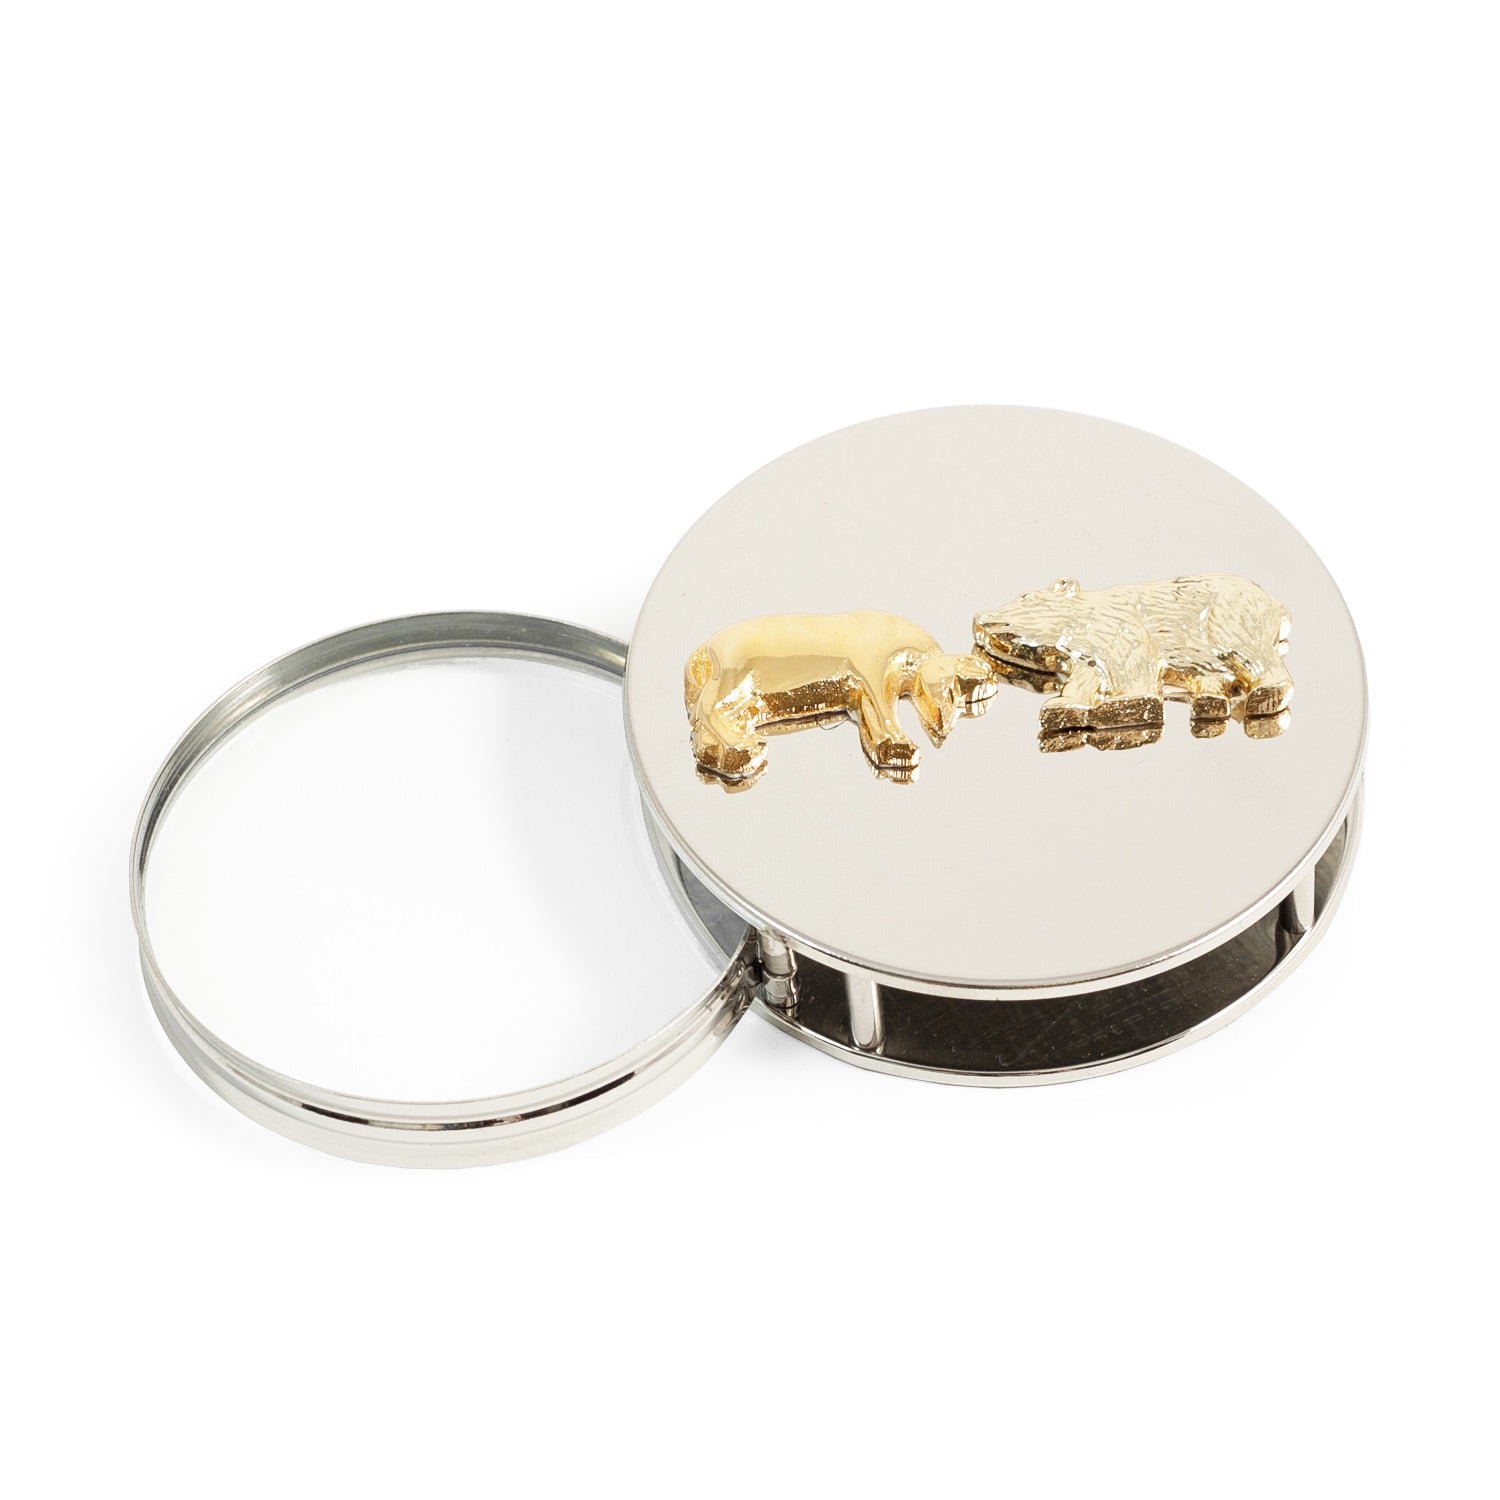 Wall Street Bull and Bear Paperweight/Magnifying Glass - Silver Plated - Wall Street Treasures